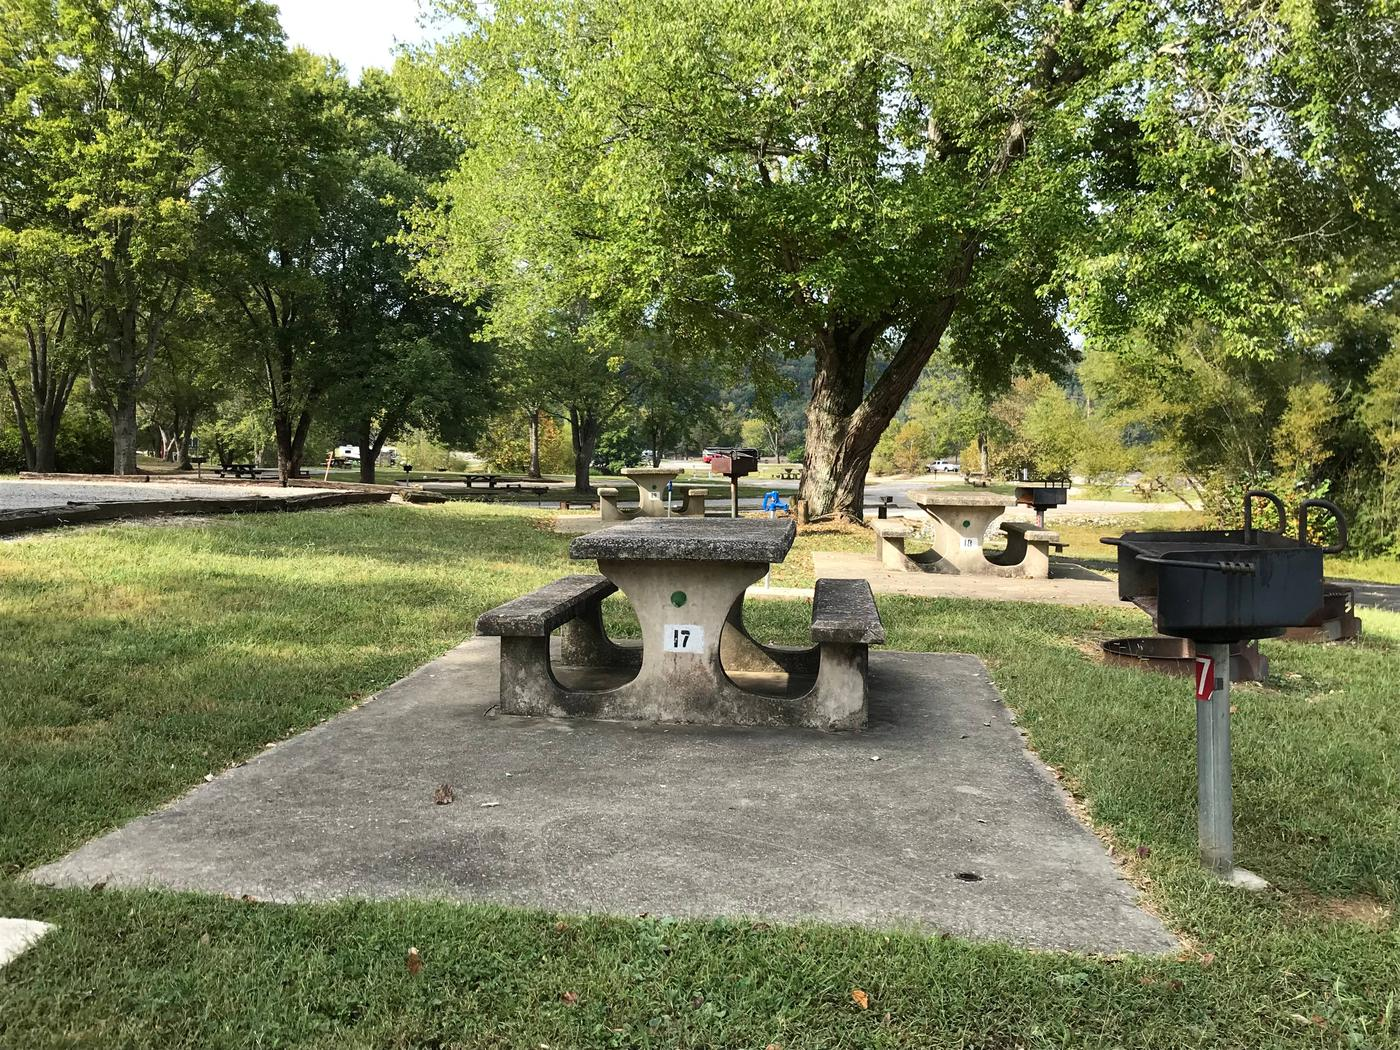 OBEY RIVER PARK SITE # 17 CONCRETE TABLE AND GRILLOBEY RIVER PARK SITE # 17